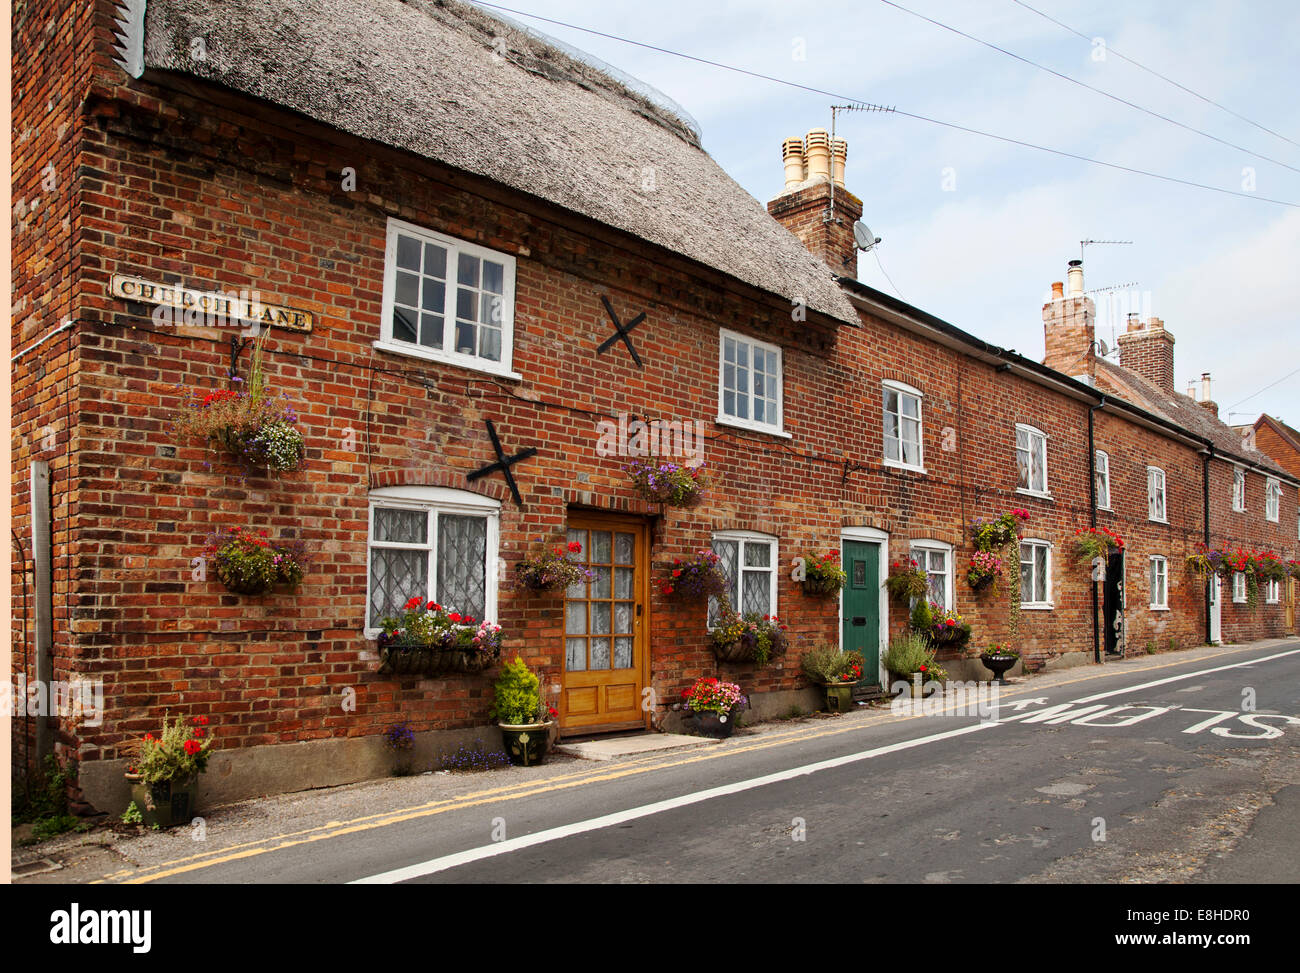 Grade II listed Old thatched cottages on Church Lane in Christchurch Dorset - Stock Image